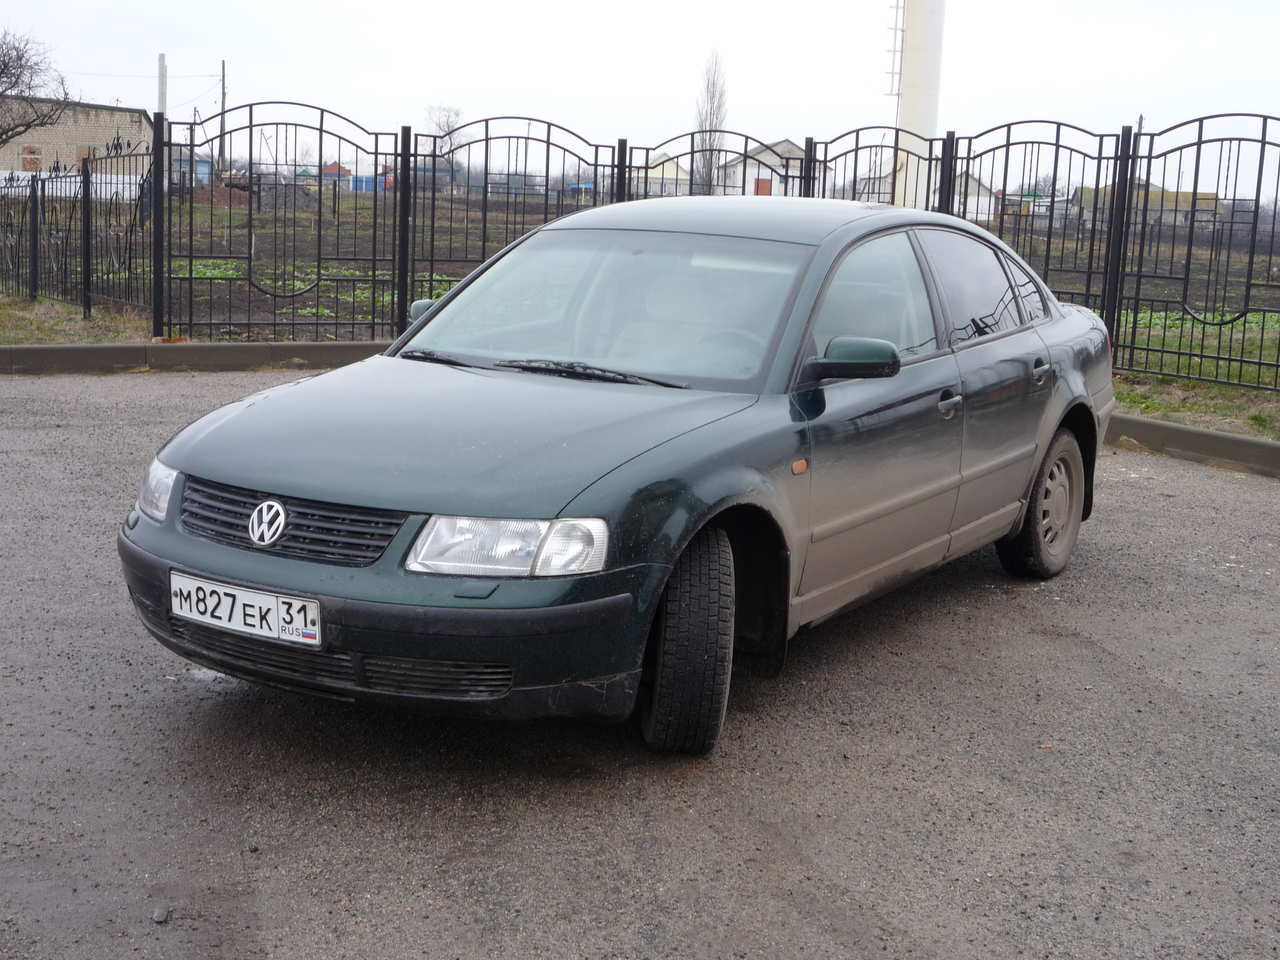 Volkswagen Passat 2.8 1997 photo - 2